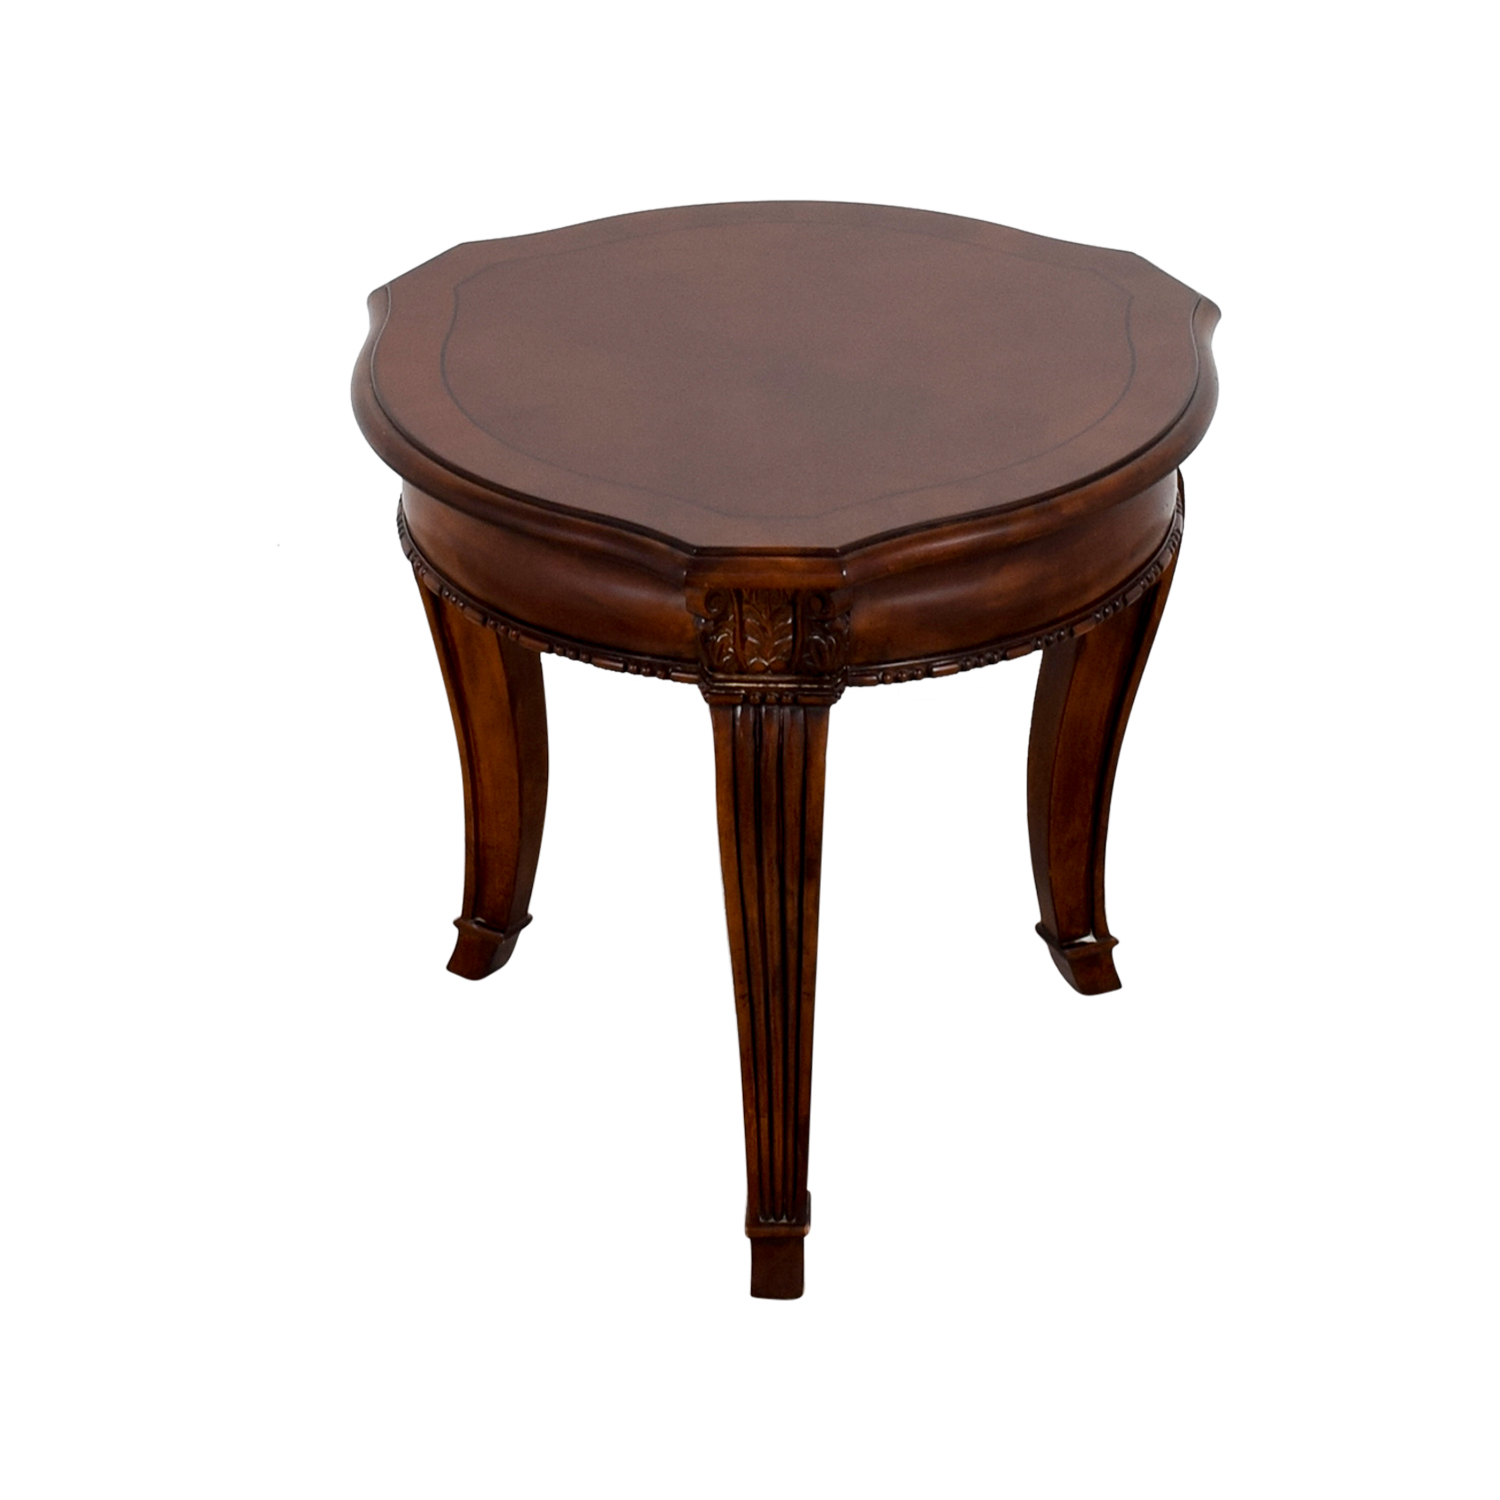 Stanley Furniture Stanley Furniture Round End Table price